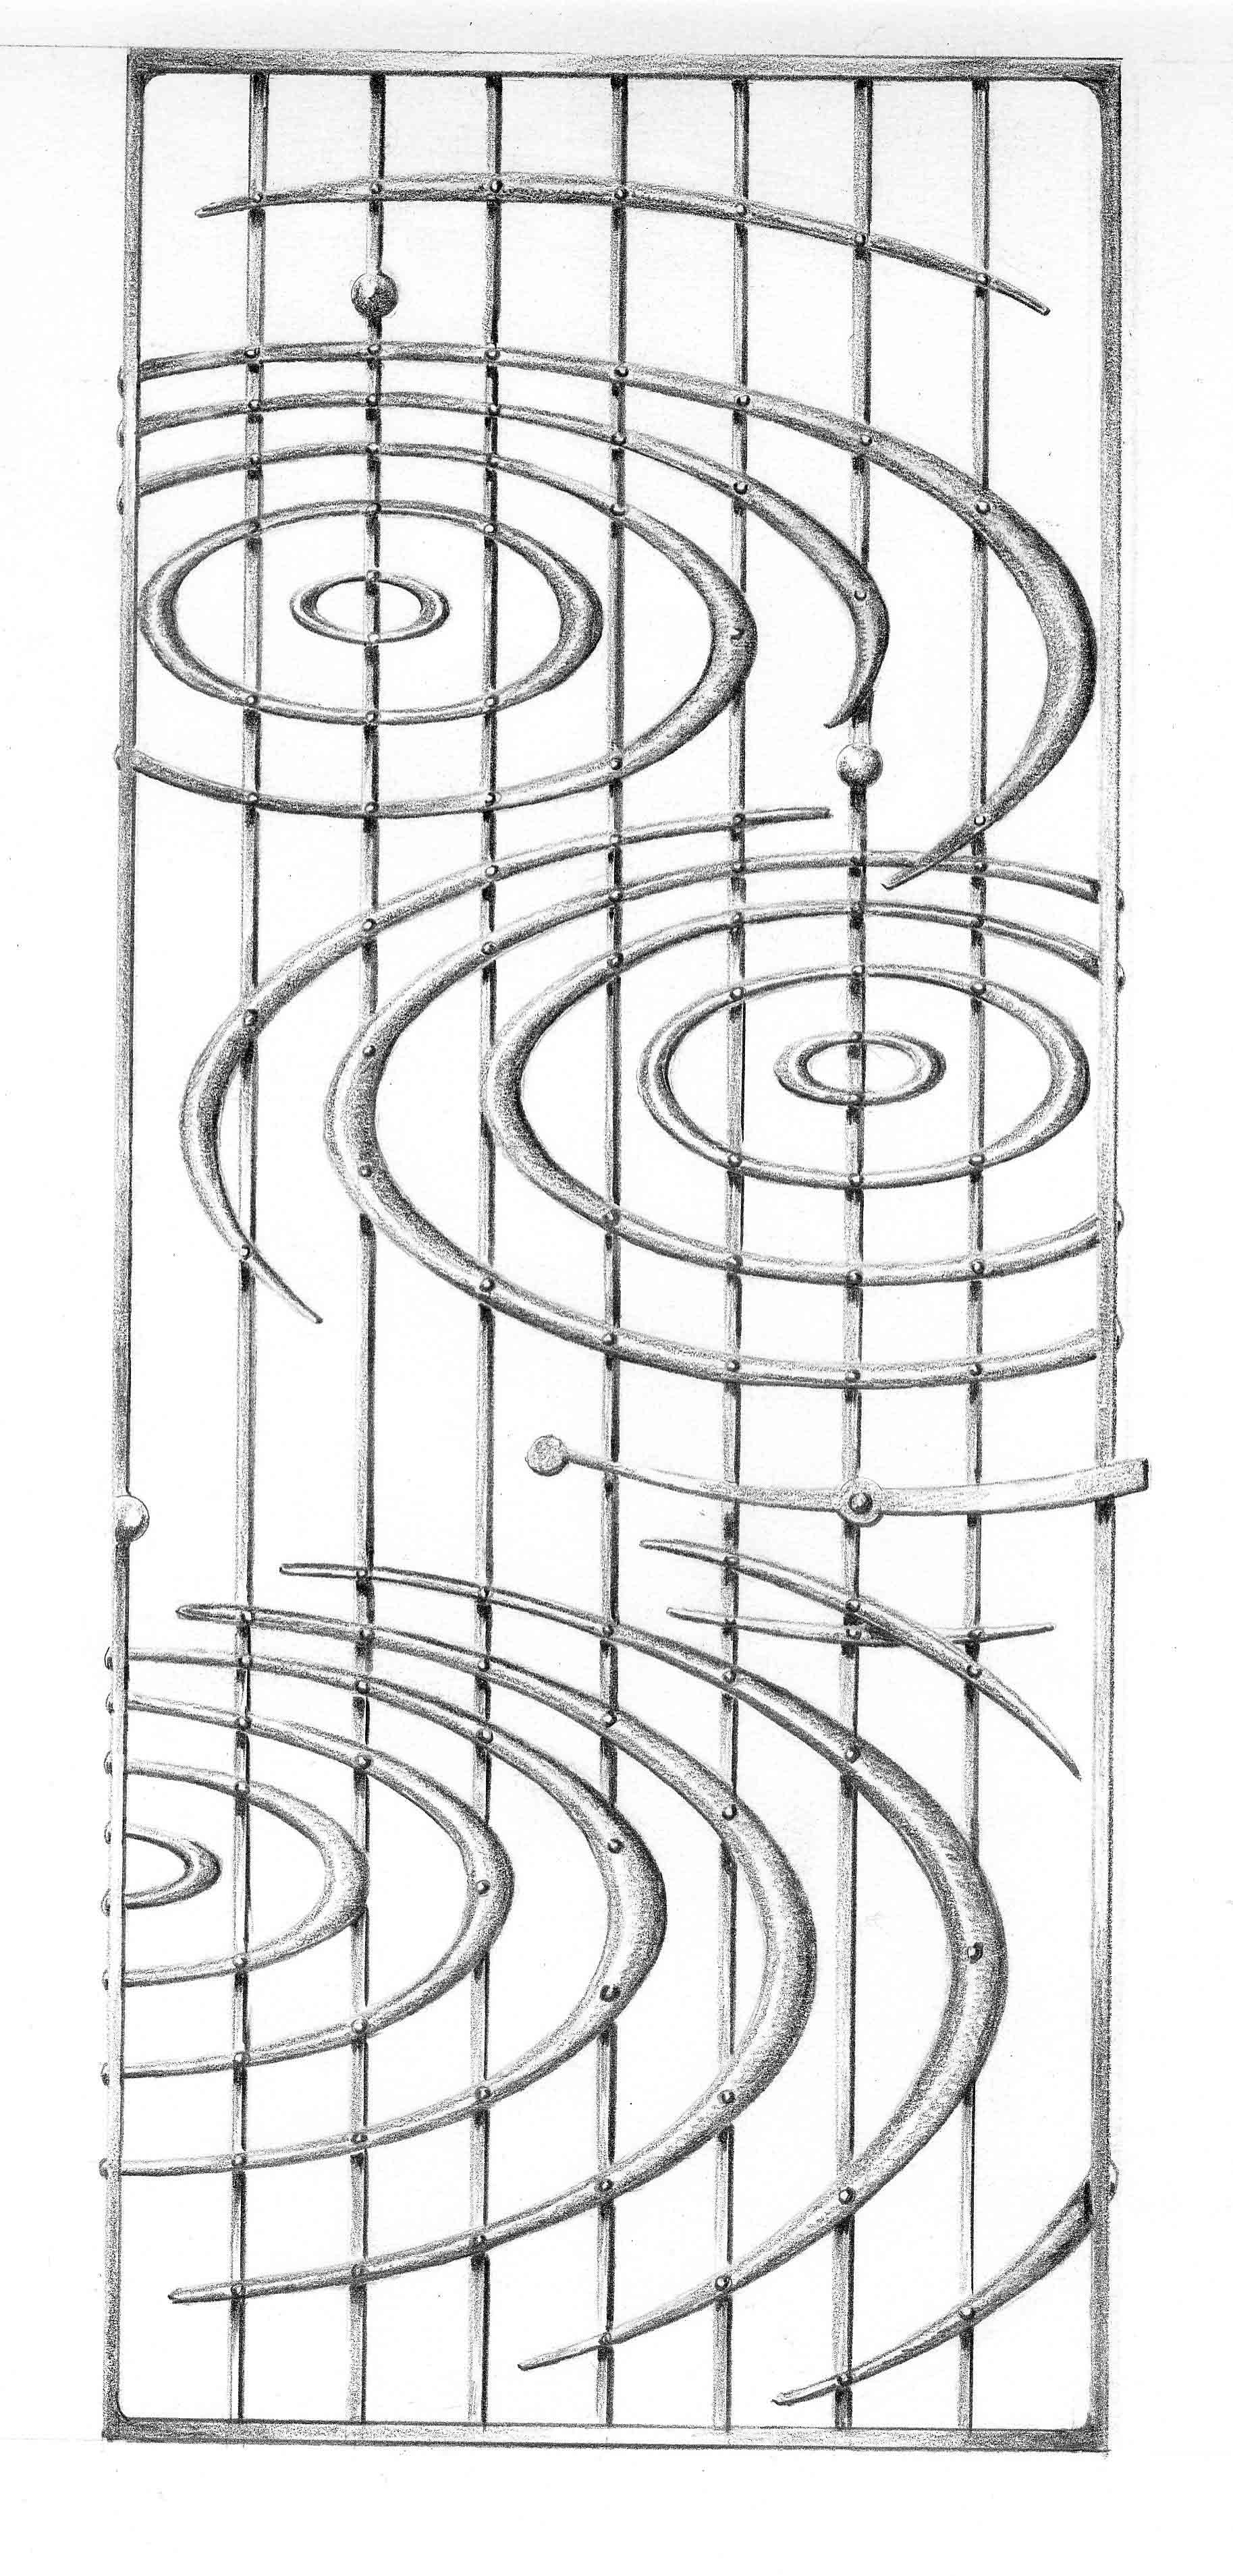 Water rings gate design